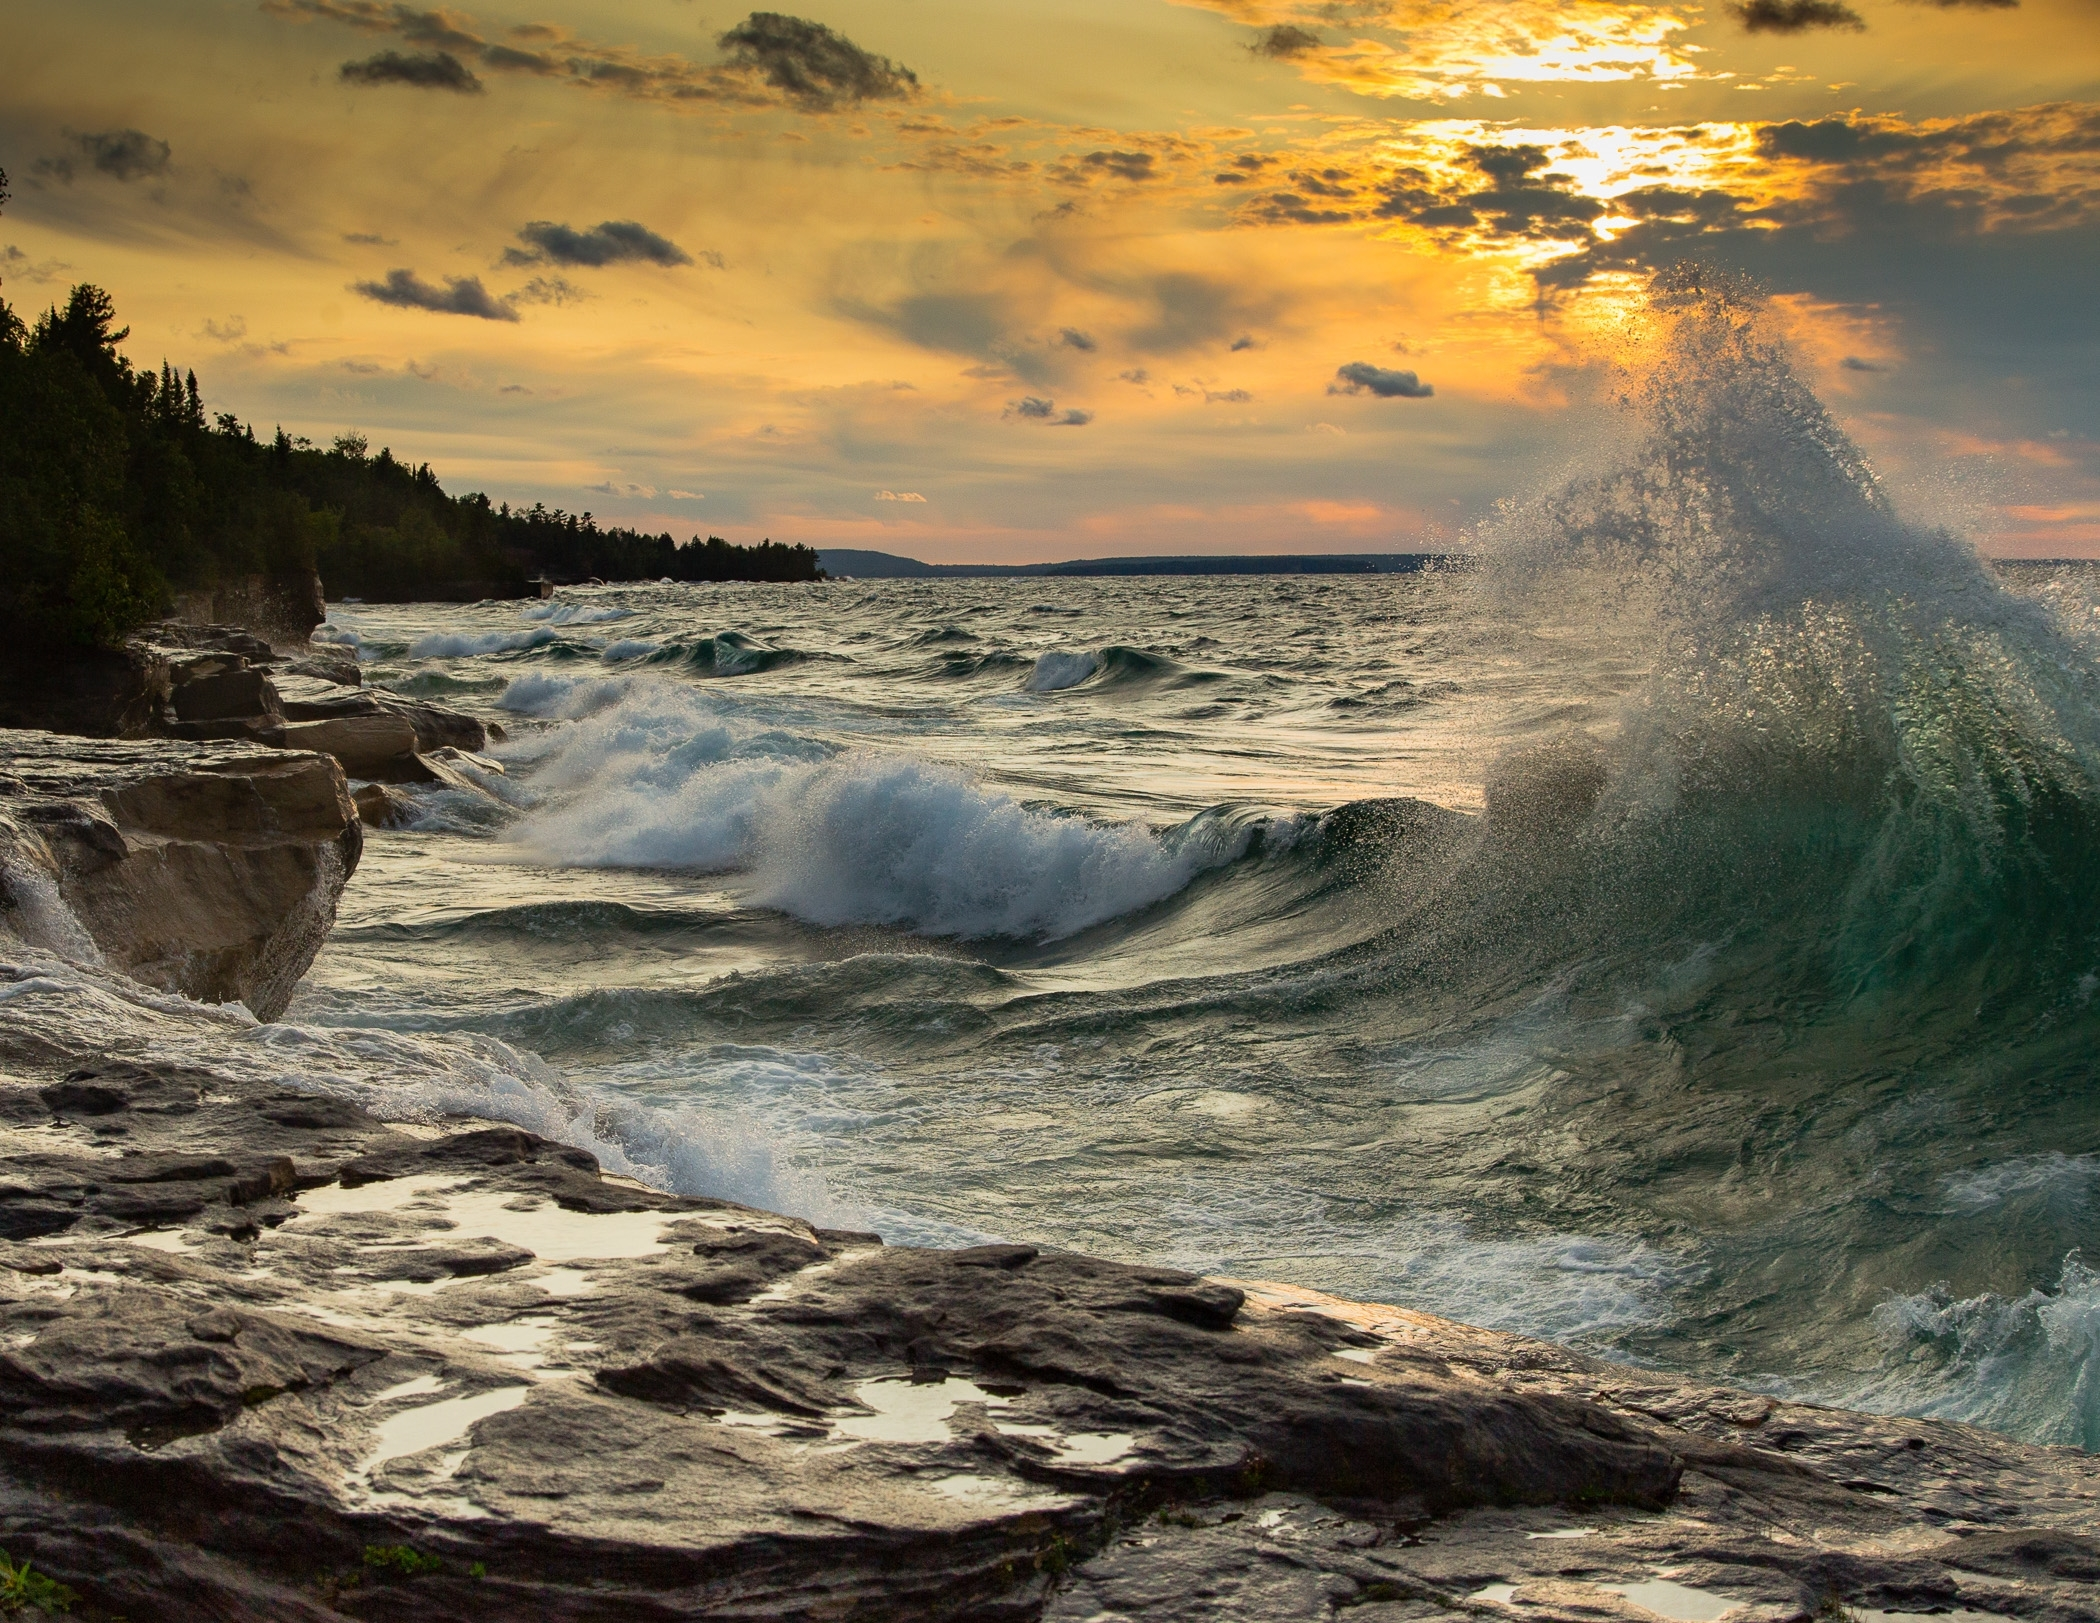 Best of Show - Lake Superior Sunset By Don Weltzien – Unlimited Visions Photo Club